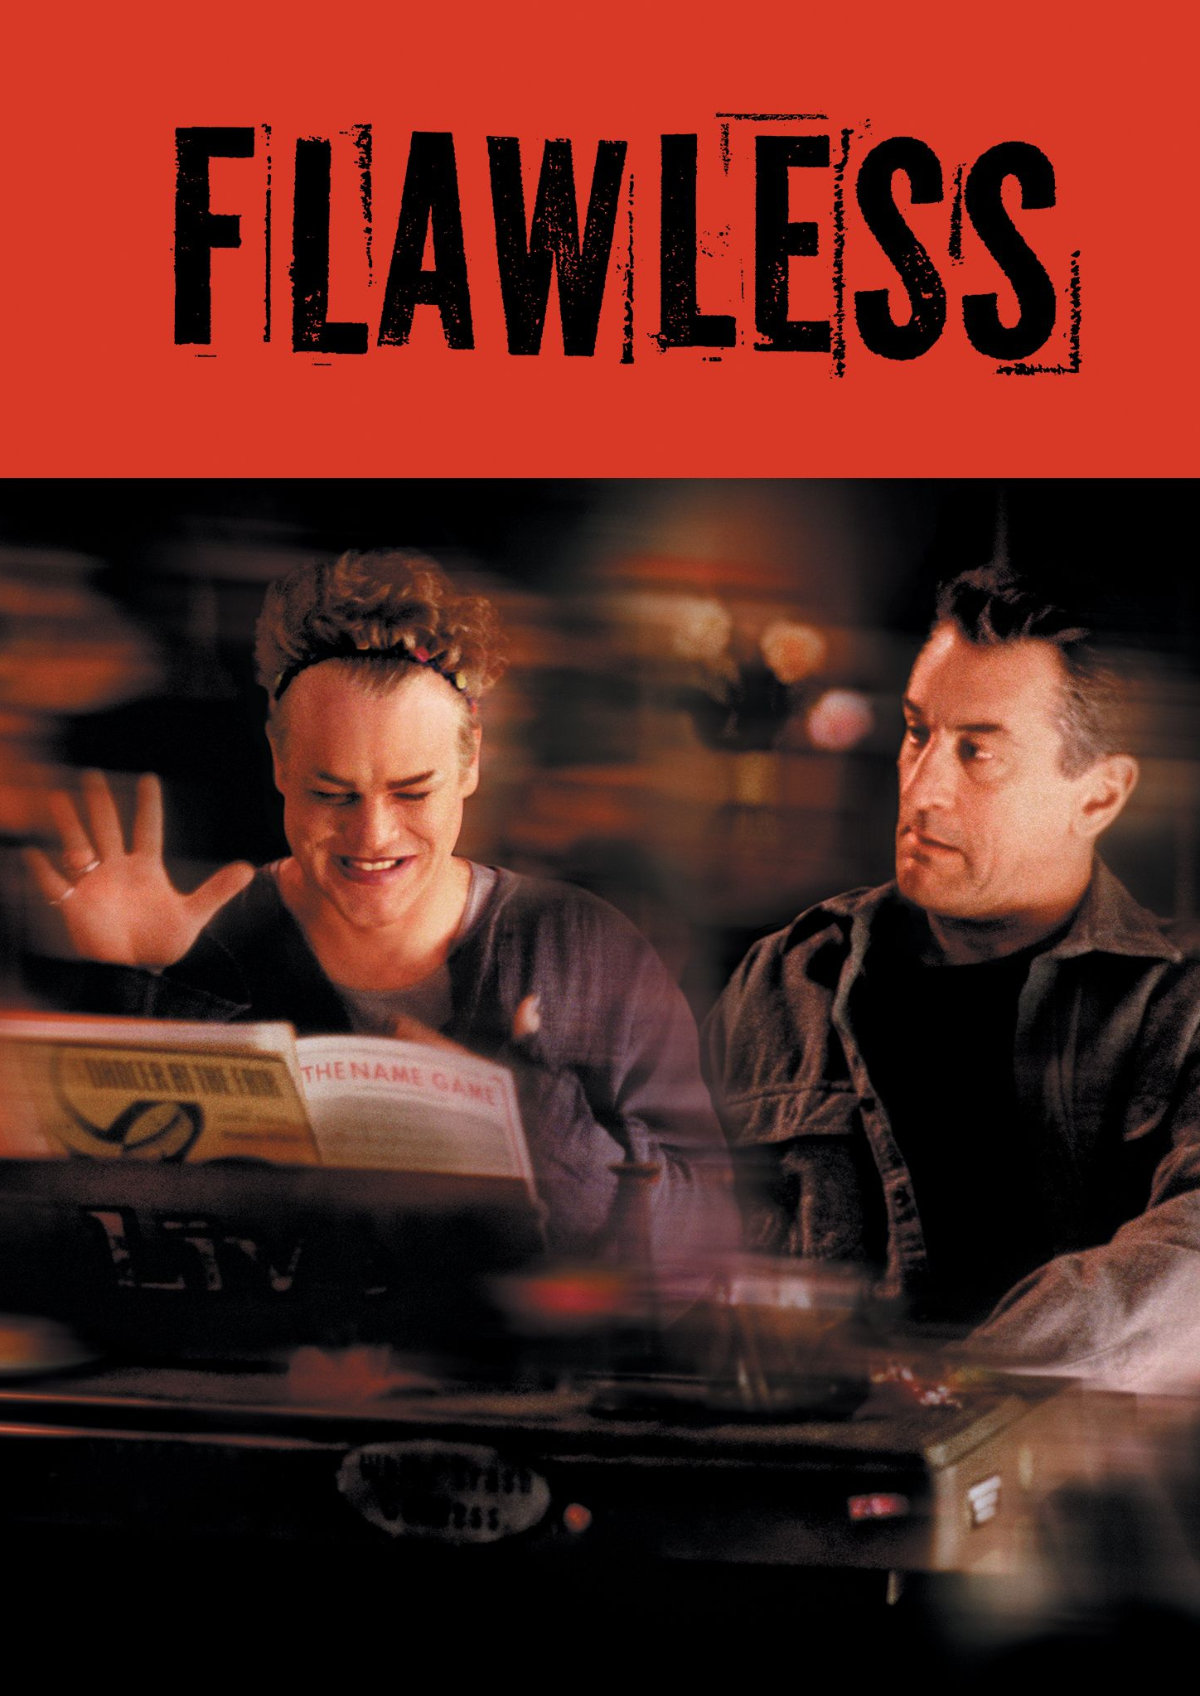 'Flawless' movie poster